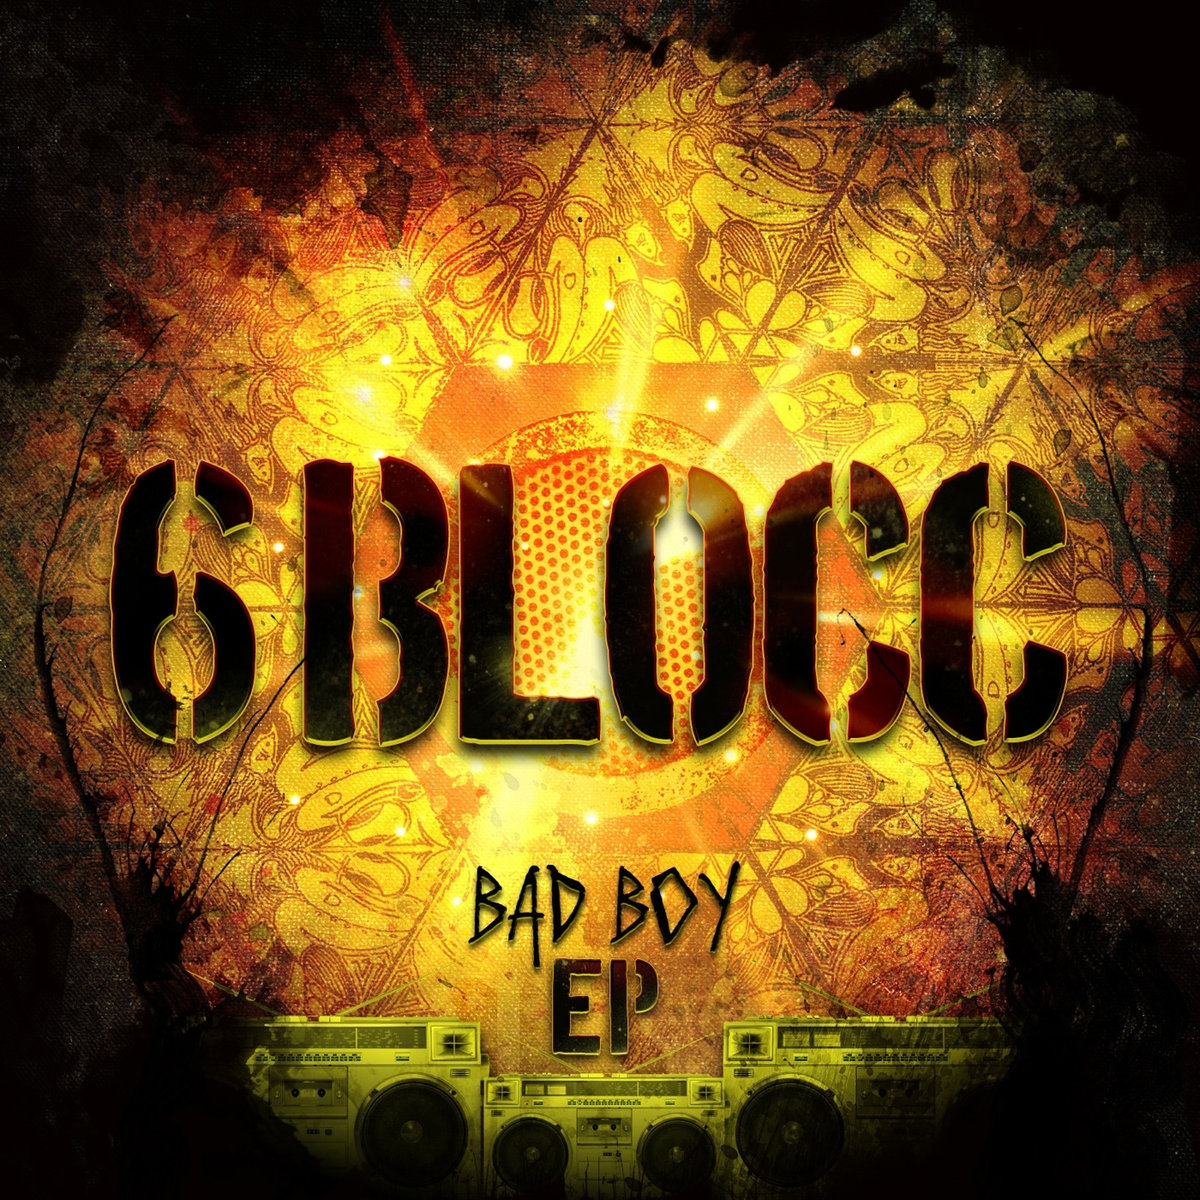 6Blocc - Bad Boy